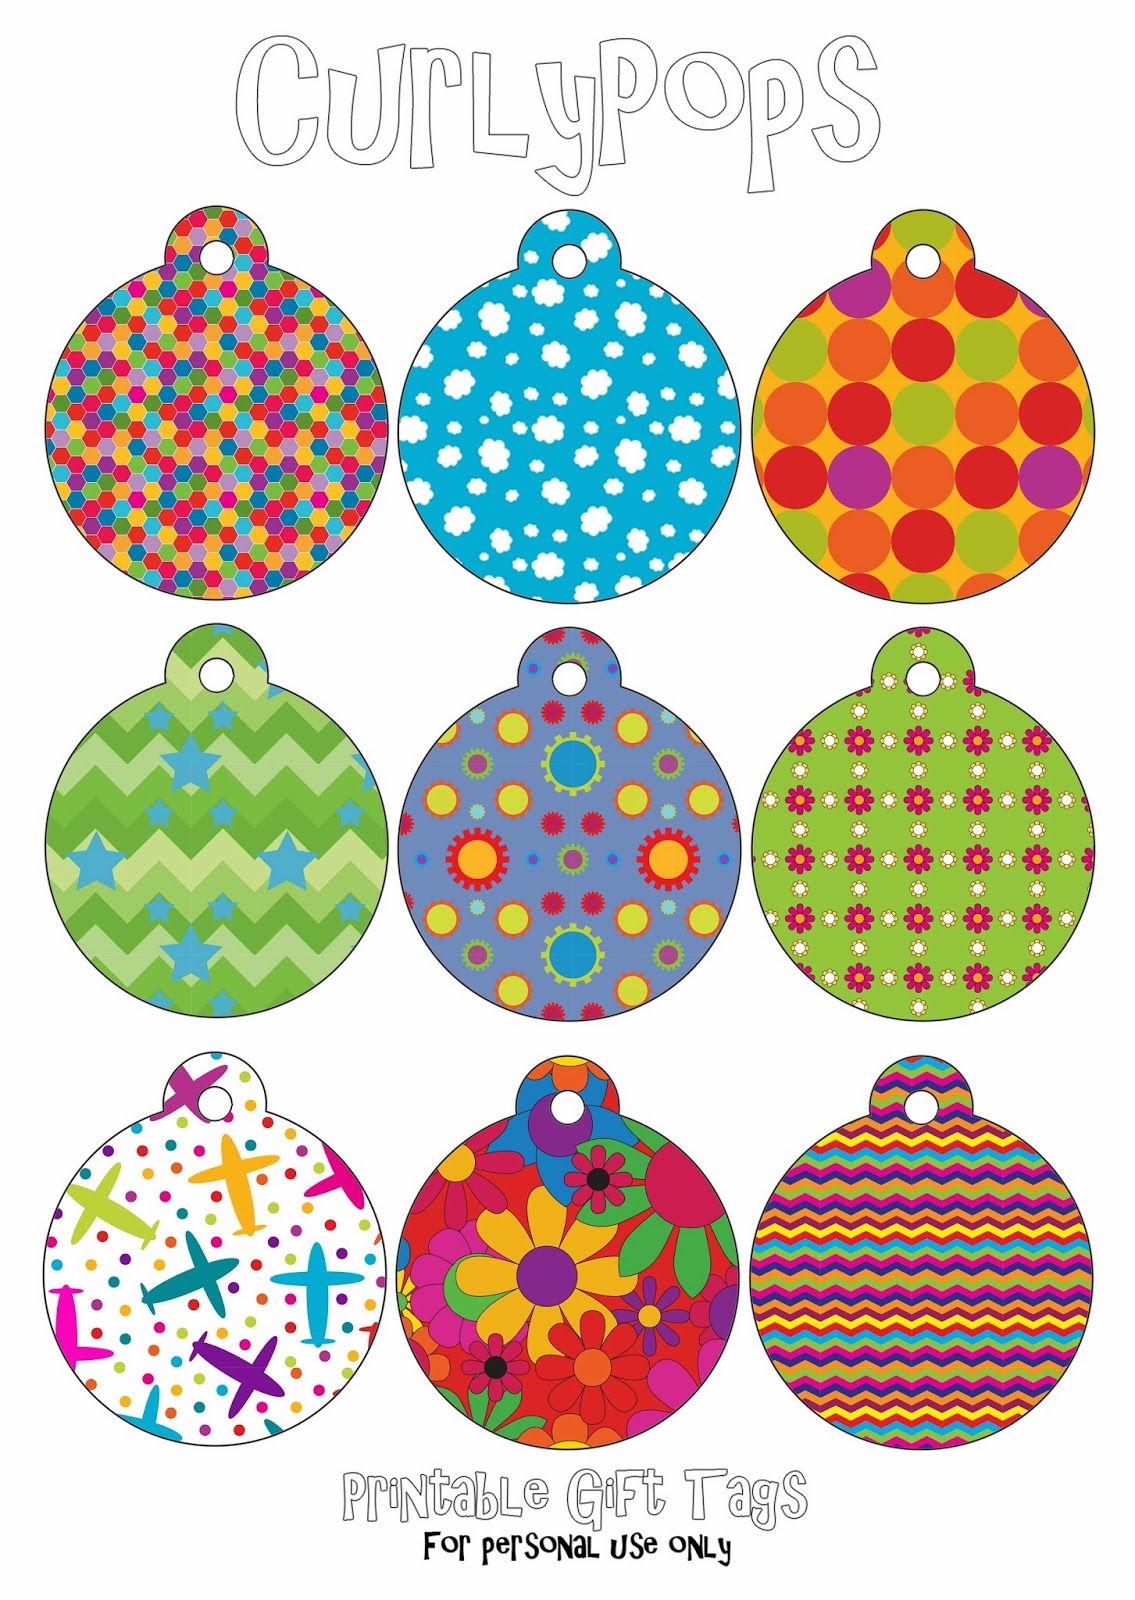 This is a picture of Sweet Christmas Ornaments Printable